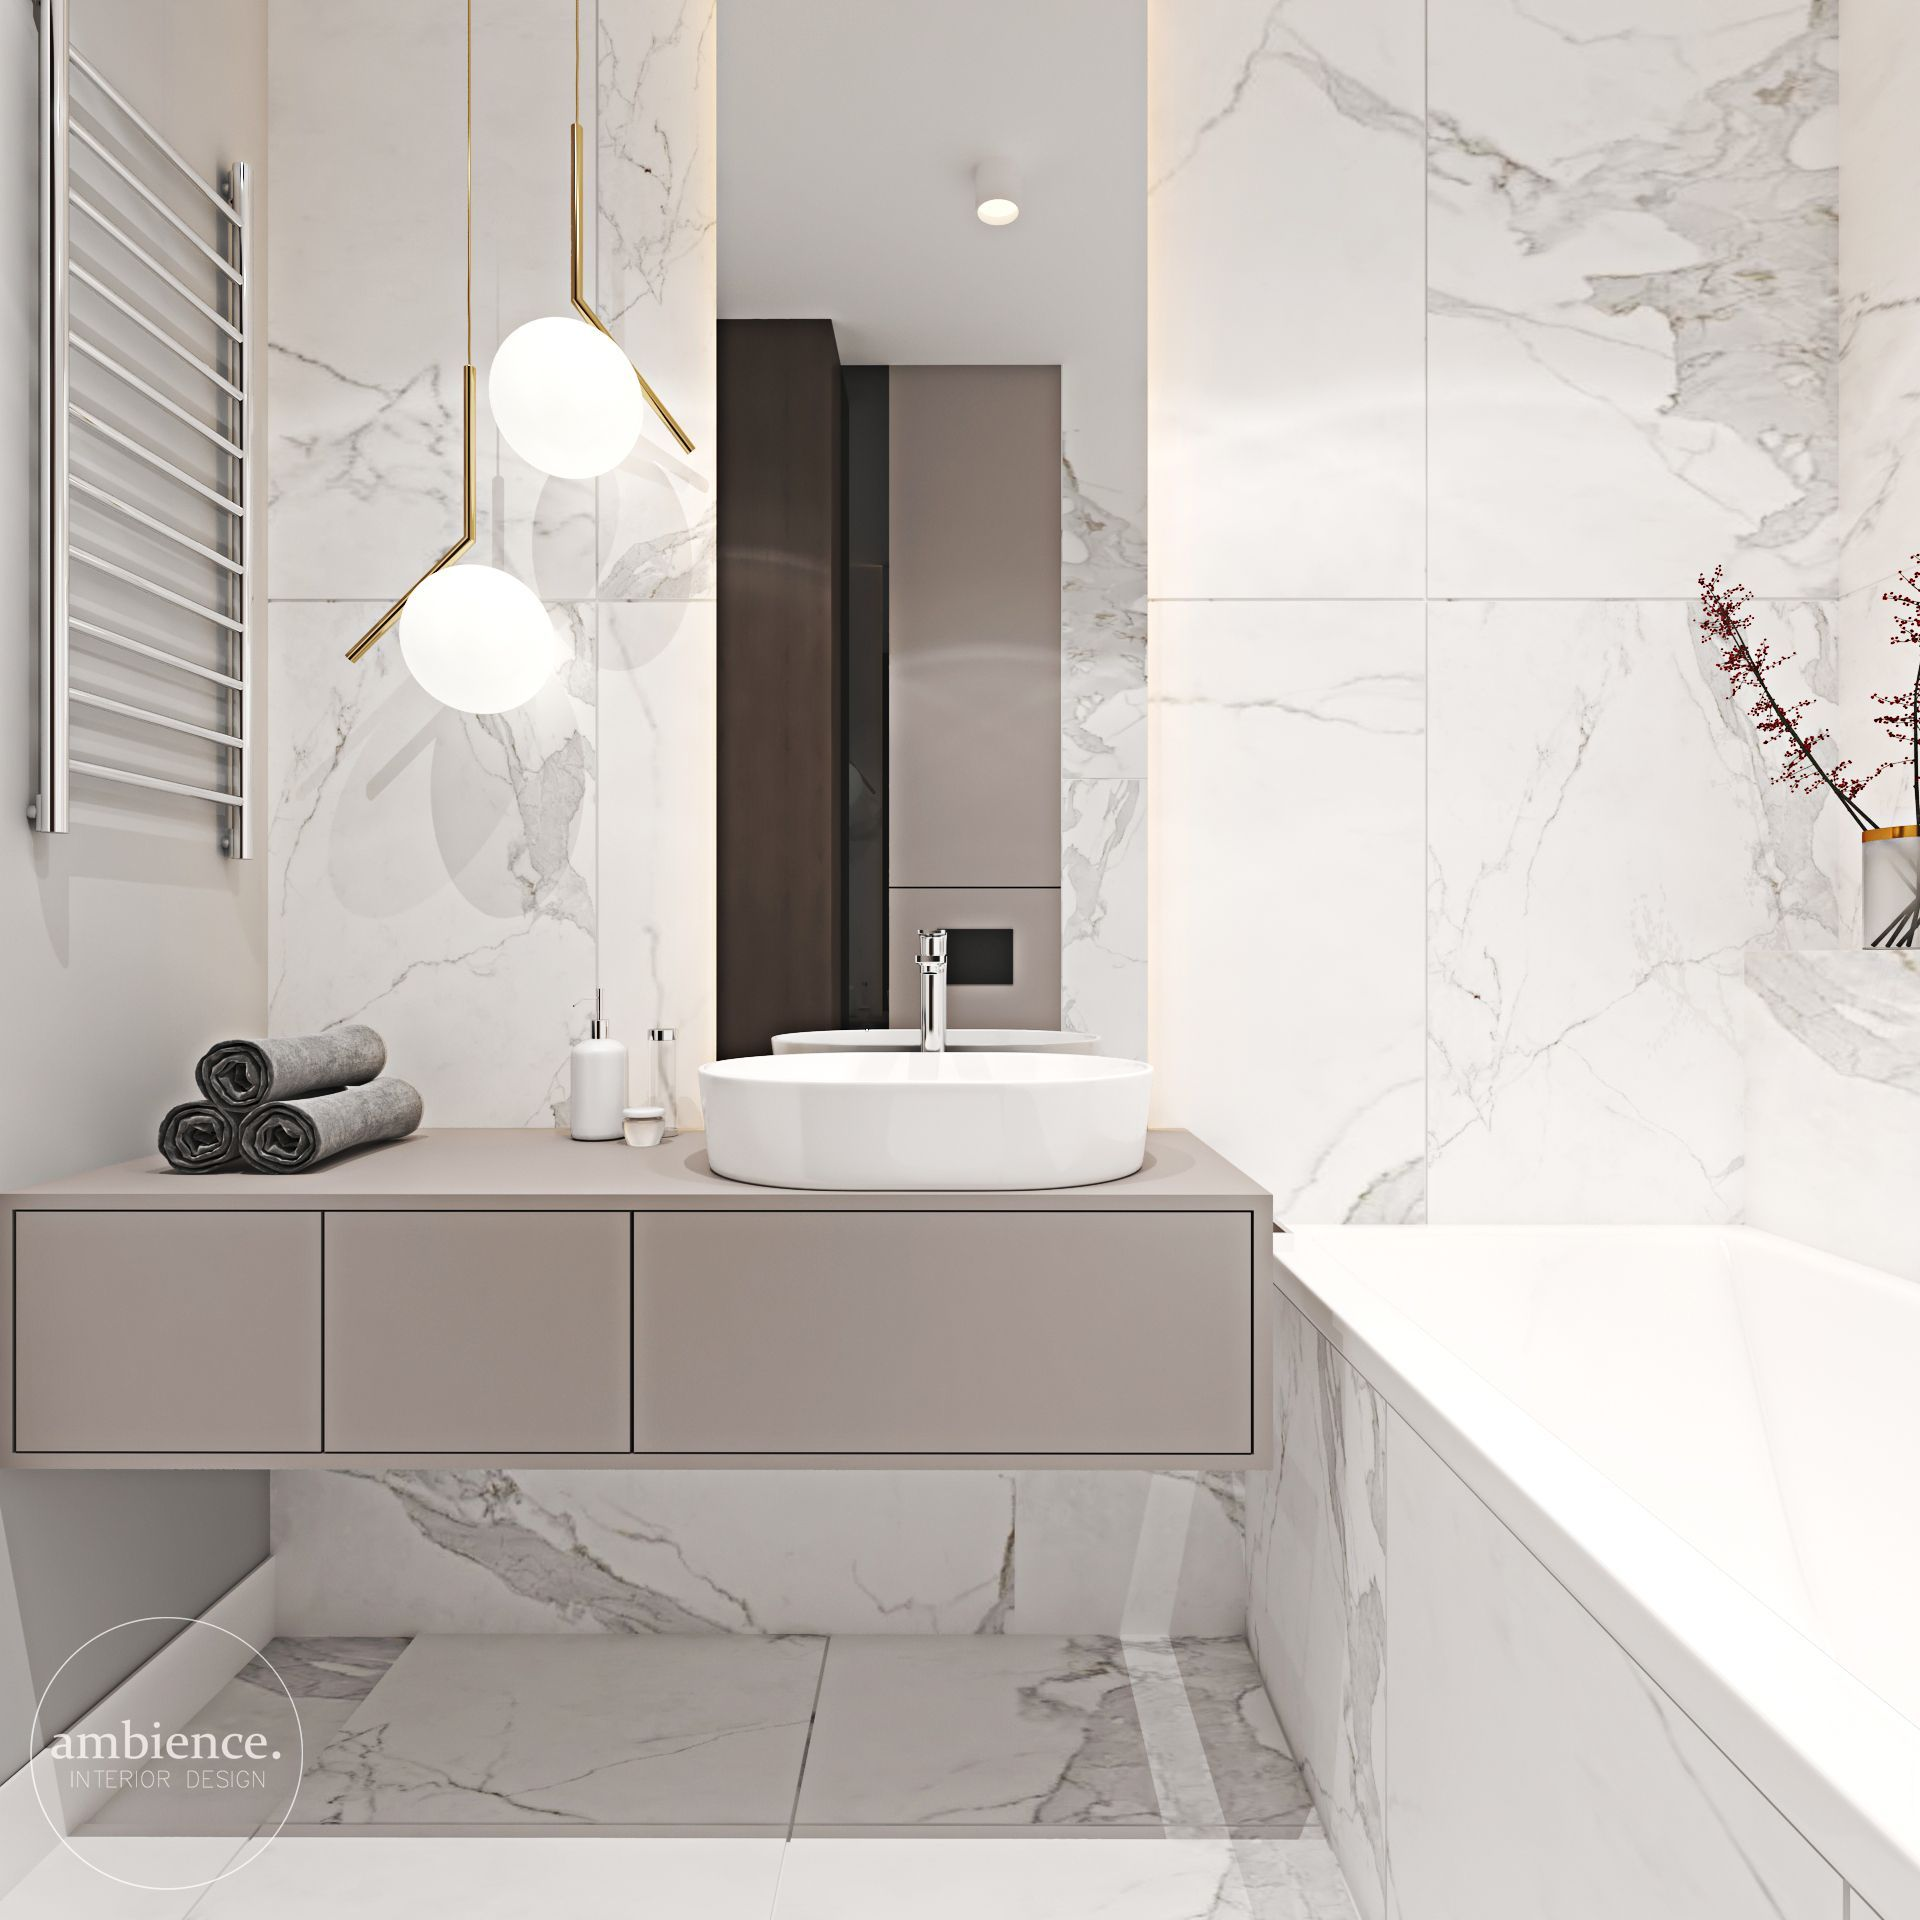 Pin By Luxxu Modern Design Living On Bathrooms In 2020 Luxury Bathroom Bathroom Interior Design Bathroom Design